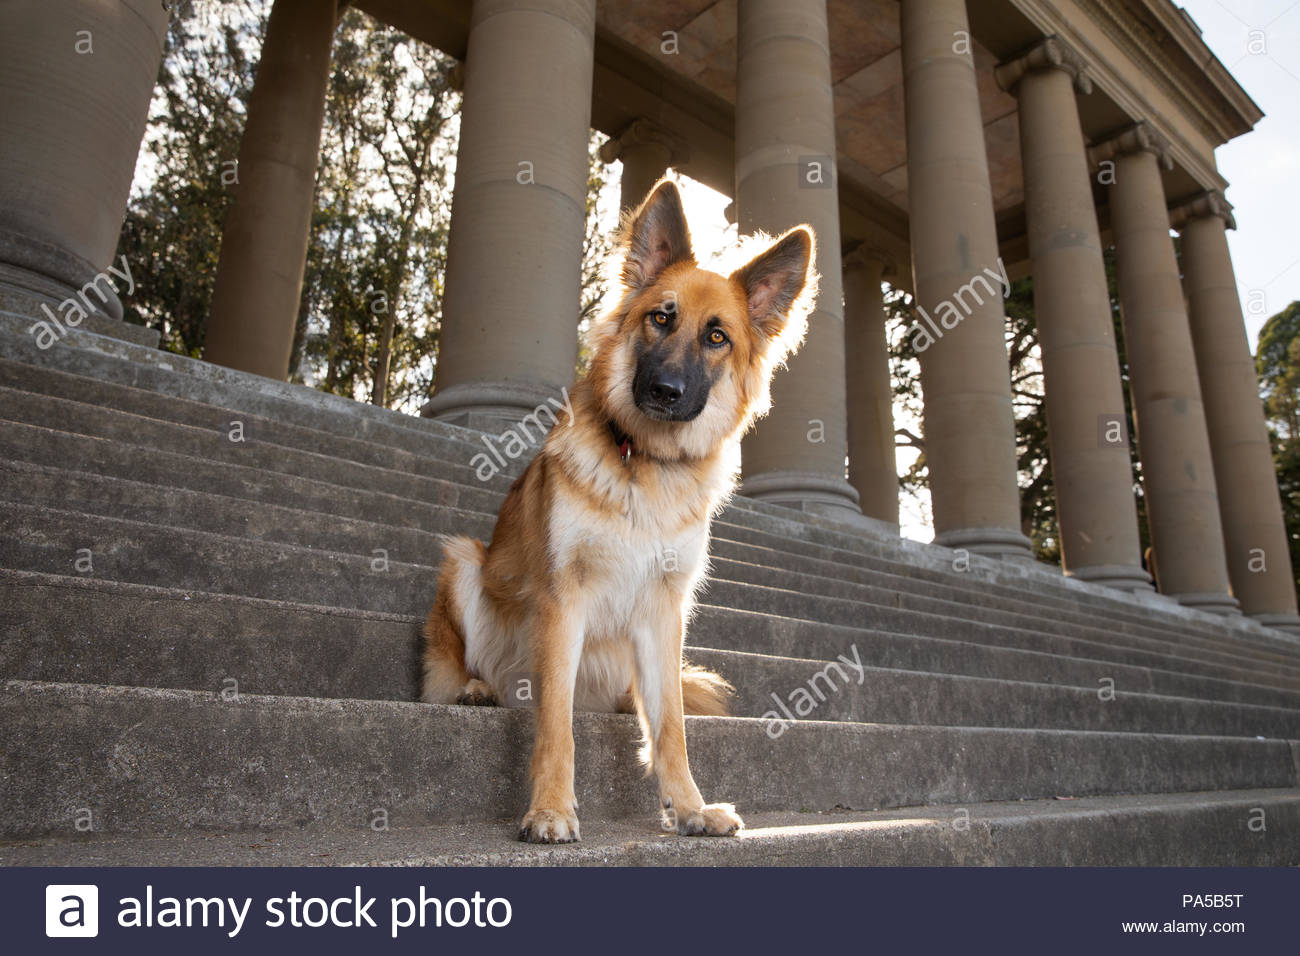 Brown Red German Shepherd with big ears sitting on steps in front of a colonnade - Stock Image